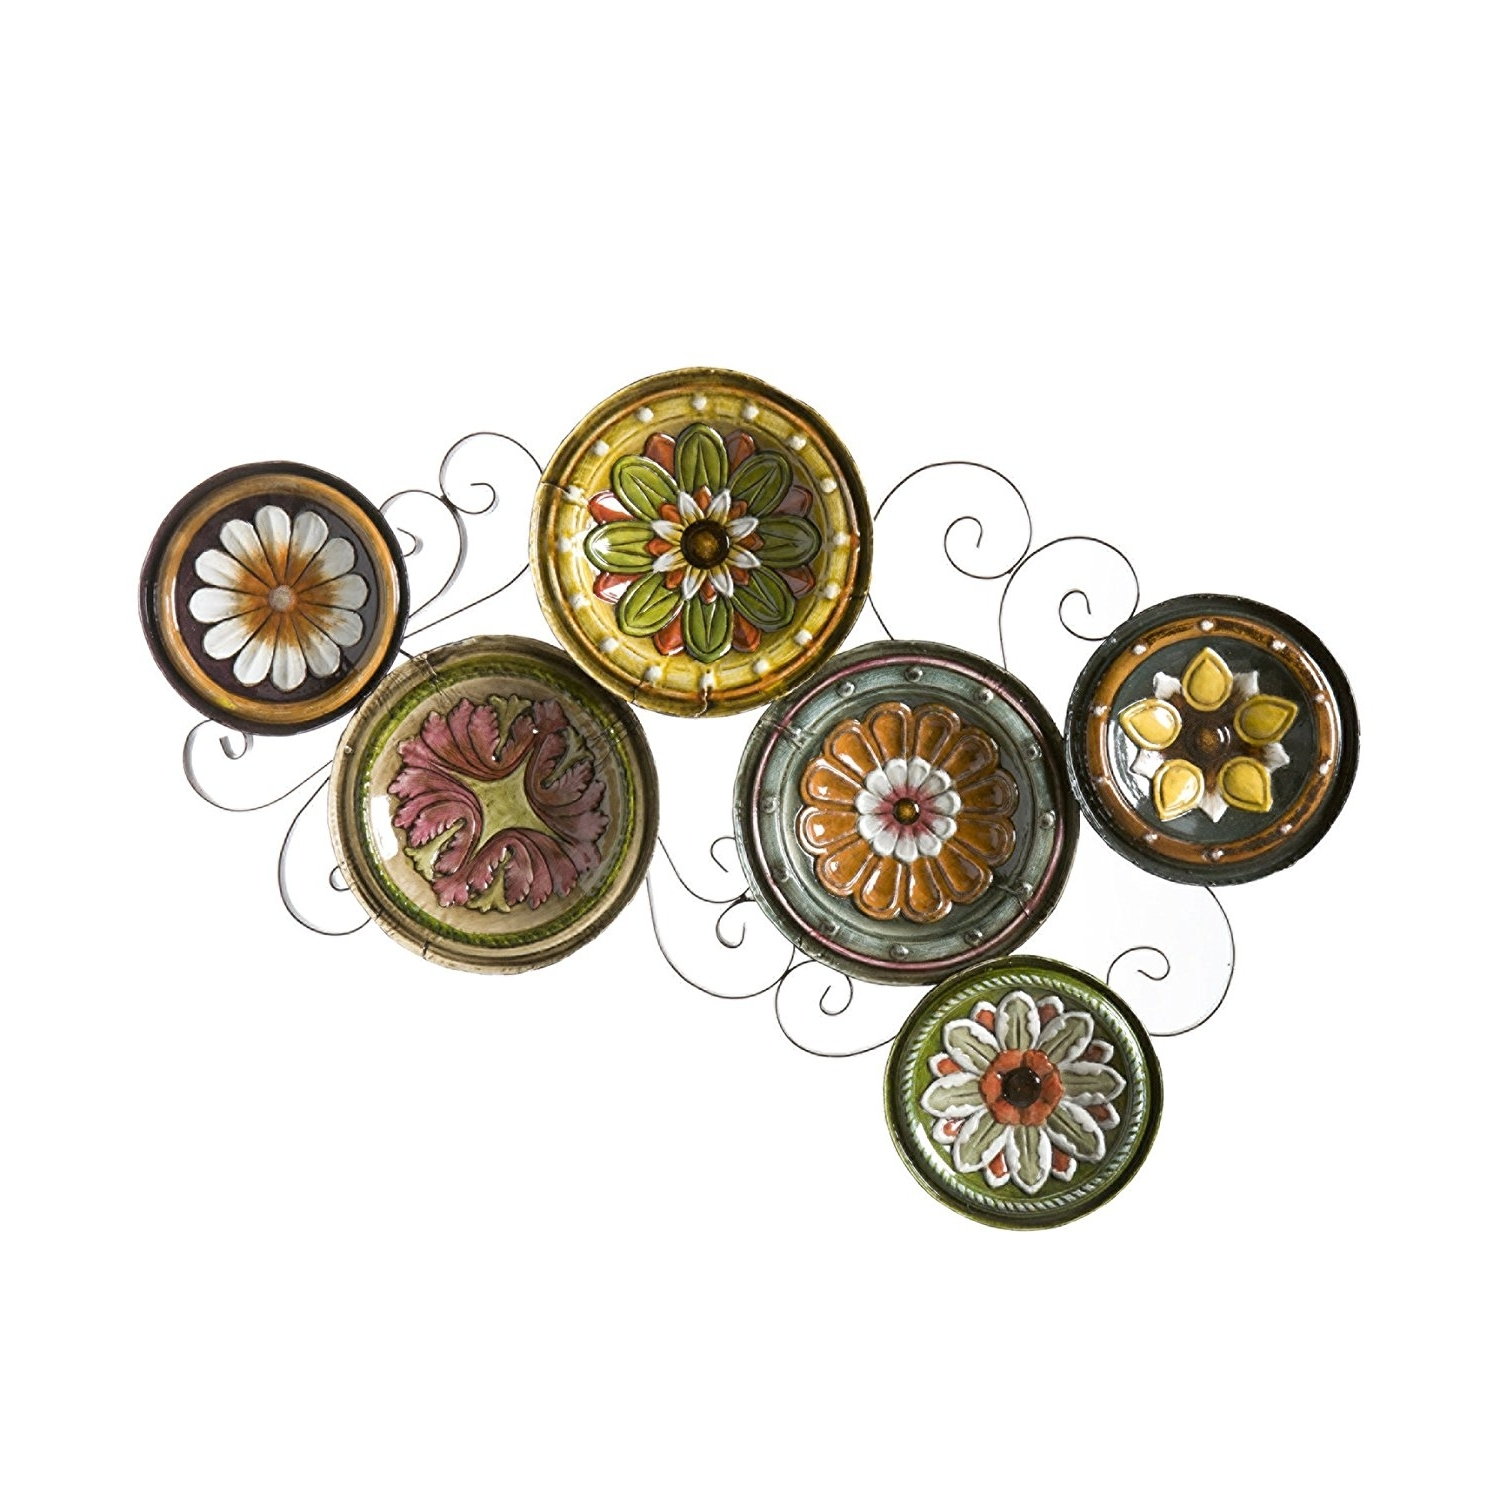 Recent Amazon: Sei Scattered Italian Plates Wall Art: Wall Sculptures Regarding Midnight Italian Plates Wall Art (View 15 of 15)